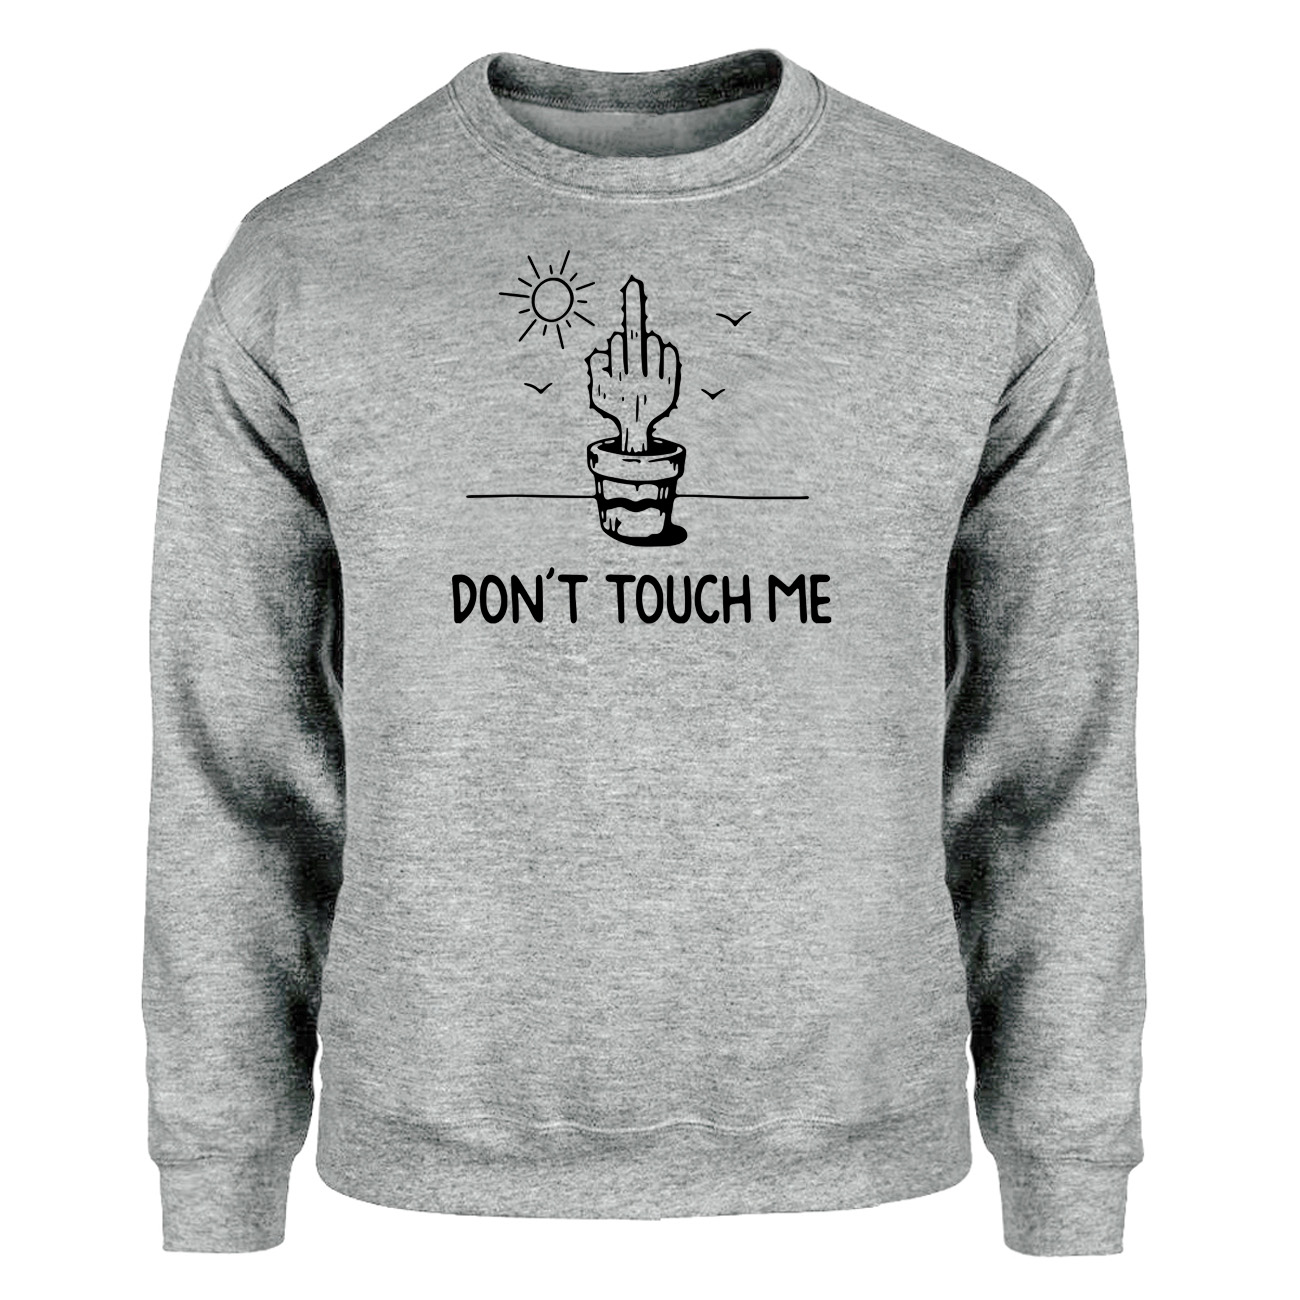 Cactus Don't Touch Me Funny Sweatshirt Men Crewneck Hoodies Sportswear Mens 2019 Winter Autumn Fitness Workout Print Streetwear